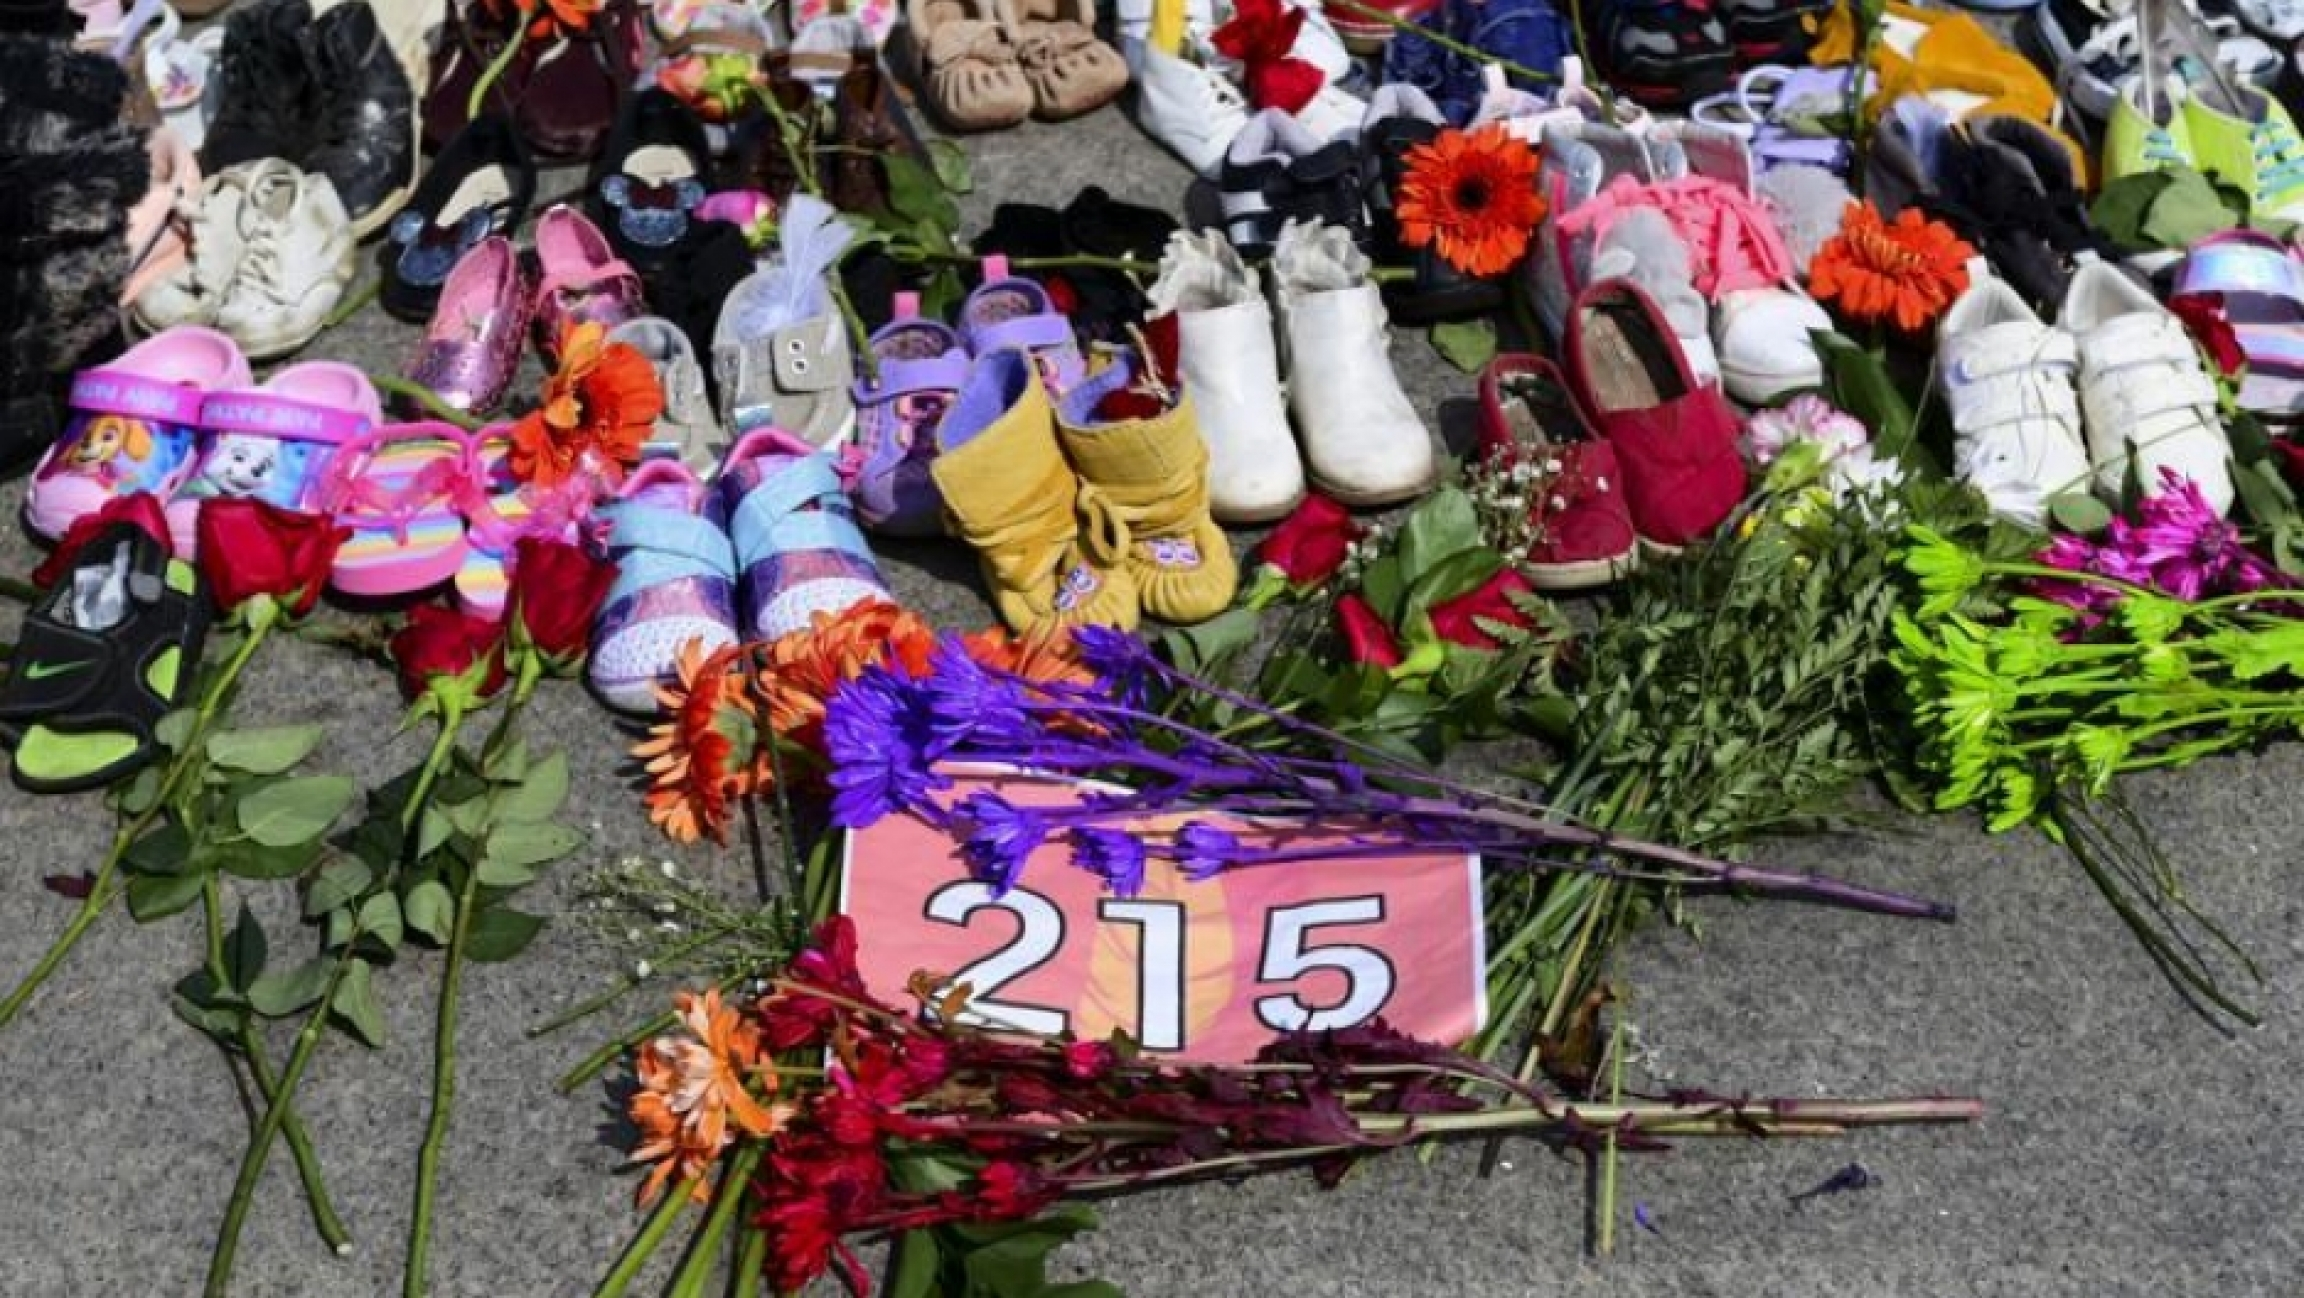 Flowers, children's shoes and other items rest at a memorial at the Eternal Flame on Parliament Hill in Ottawa